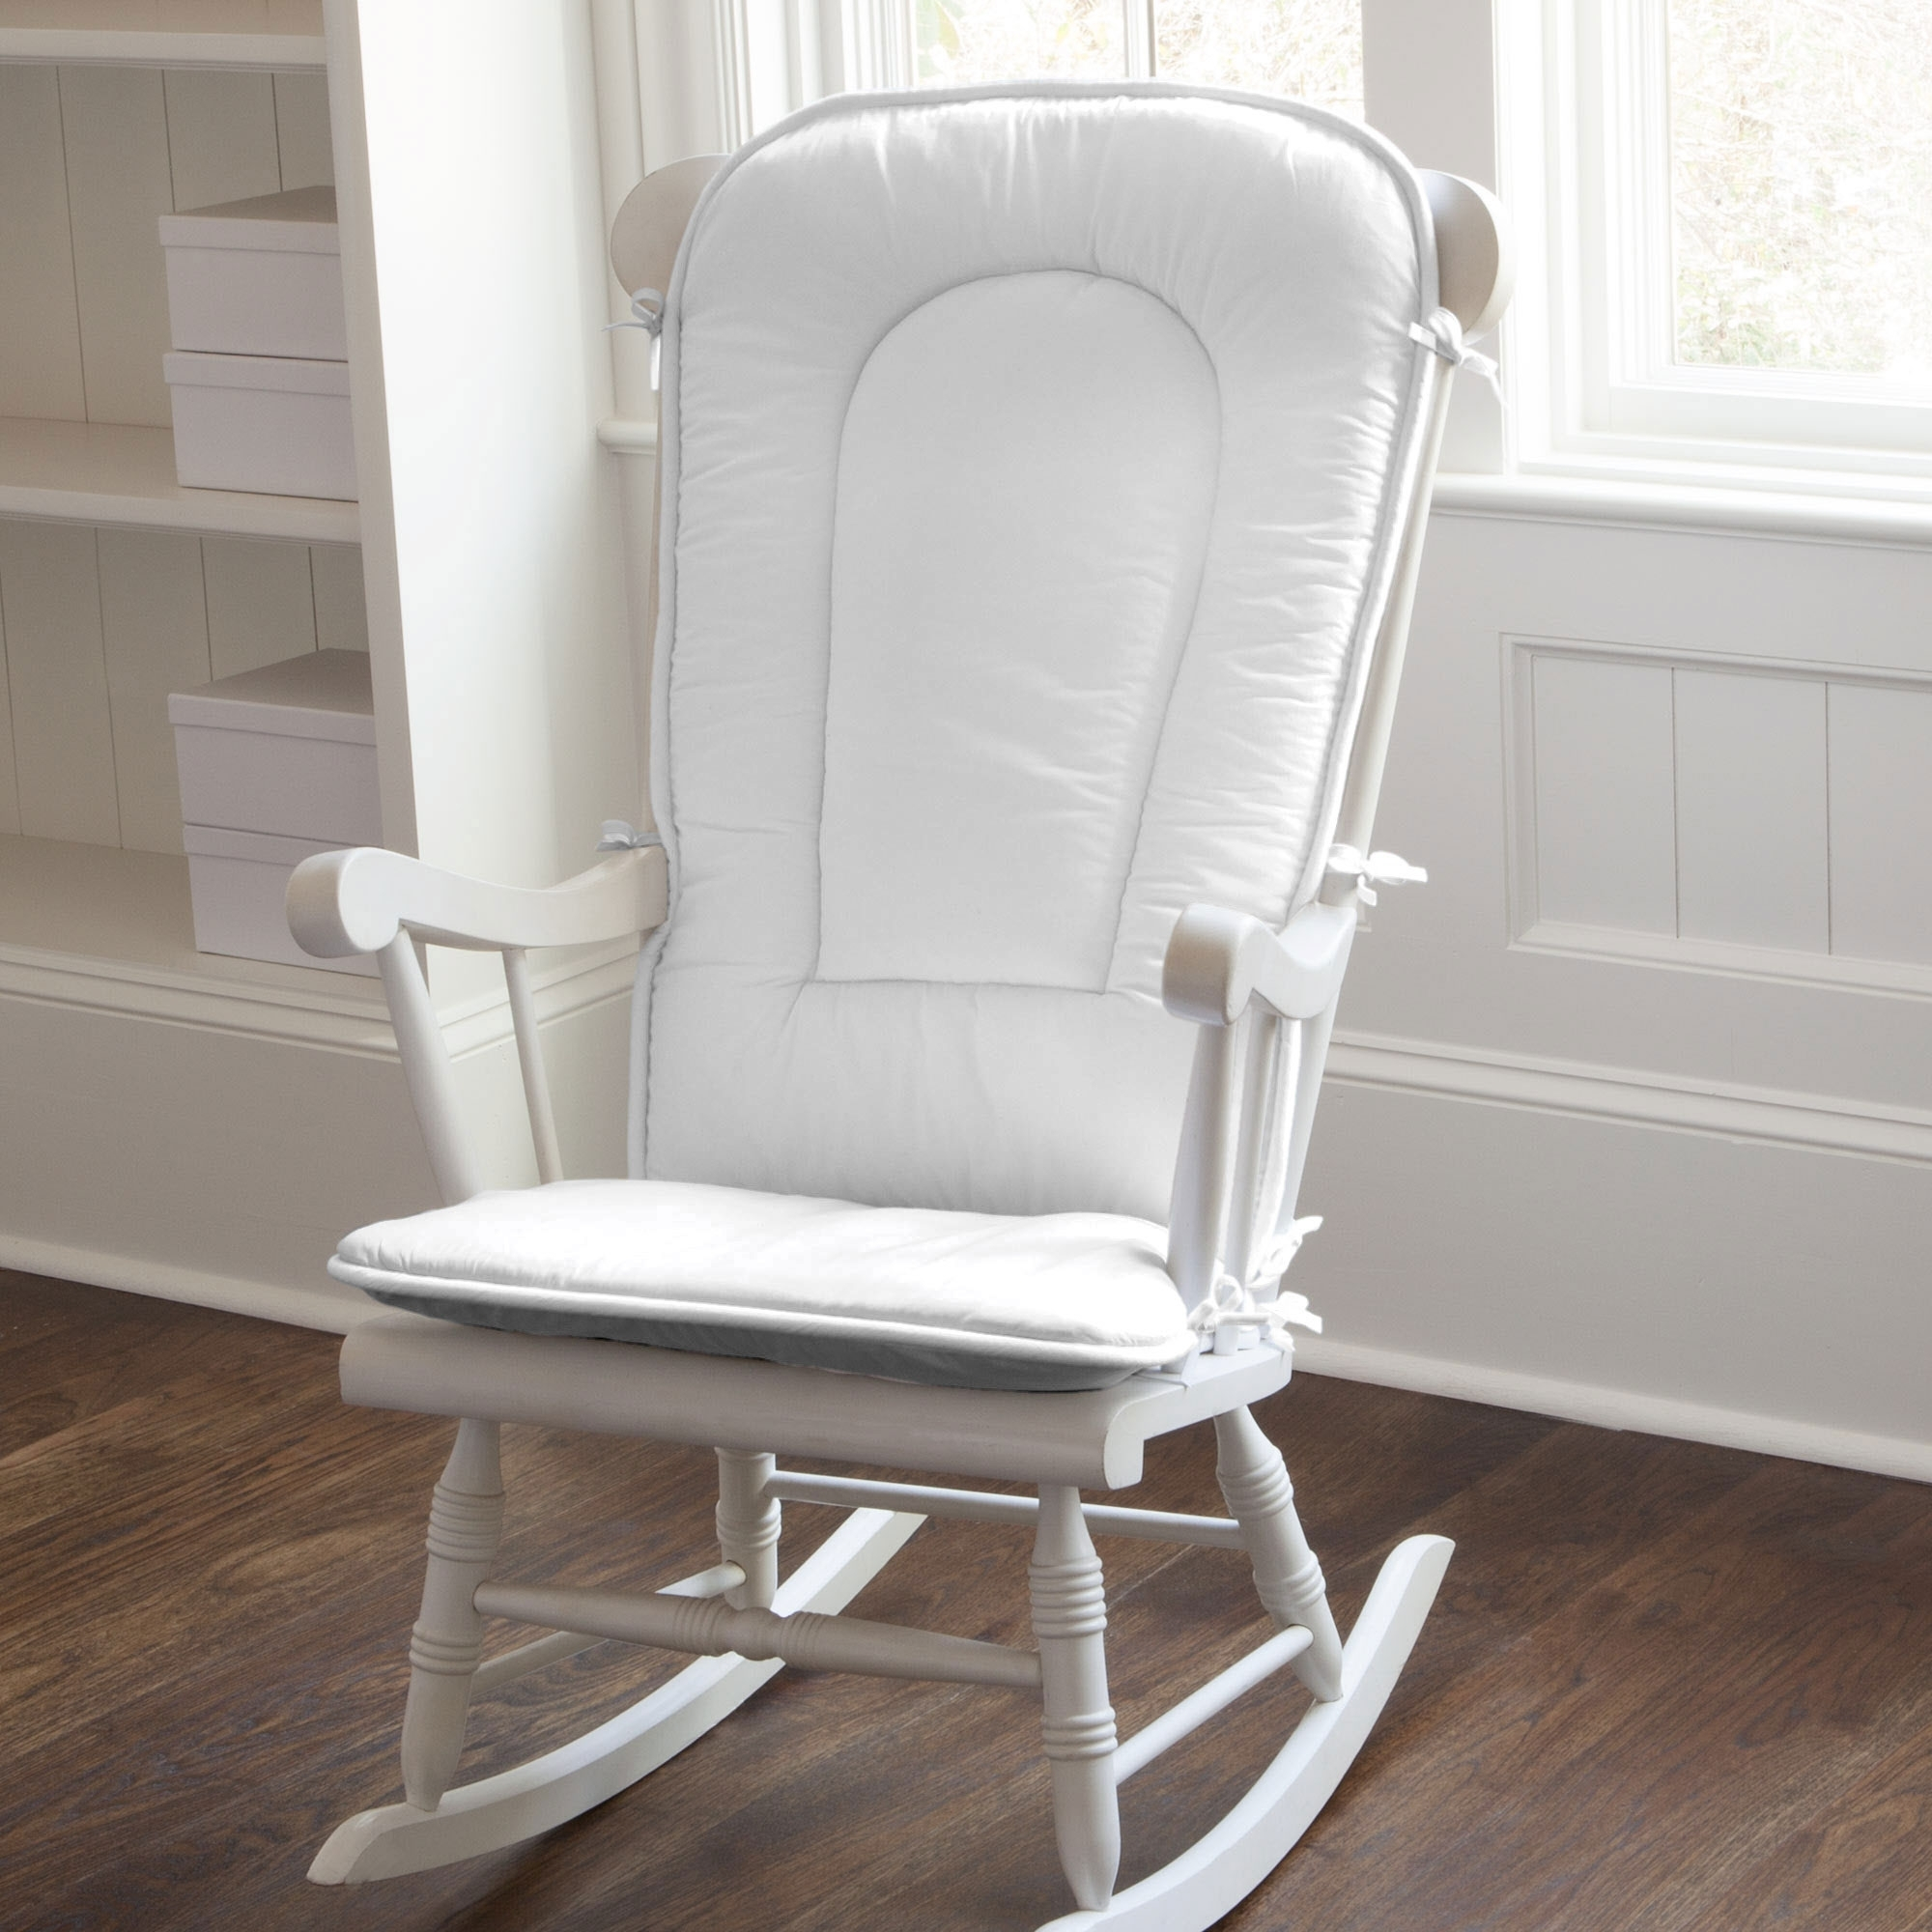 Living Room Furniture : Rocking Chairs For Baby Nursery Wooden Throughout Rocking Chairs For Baby Room (View 14 of 15)